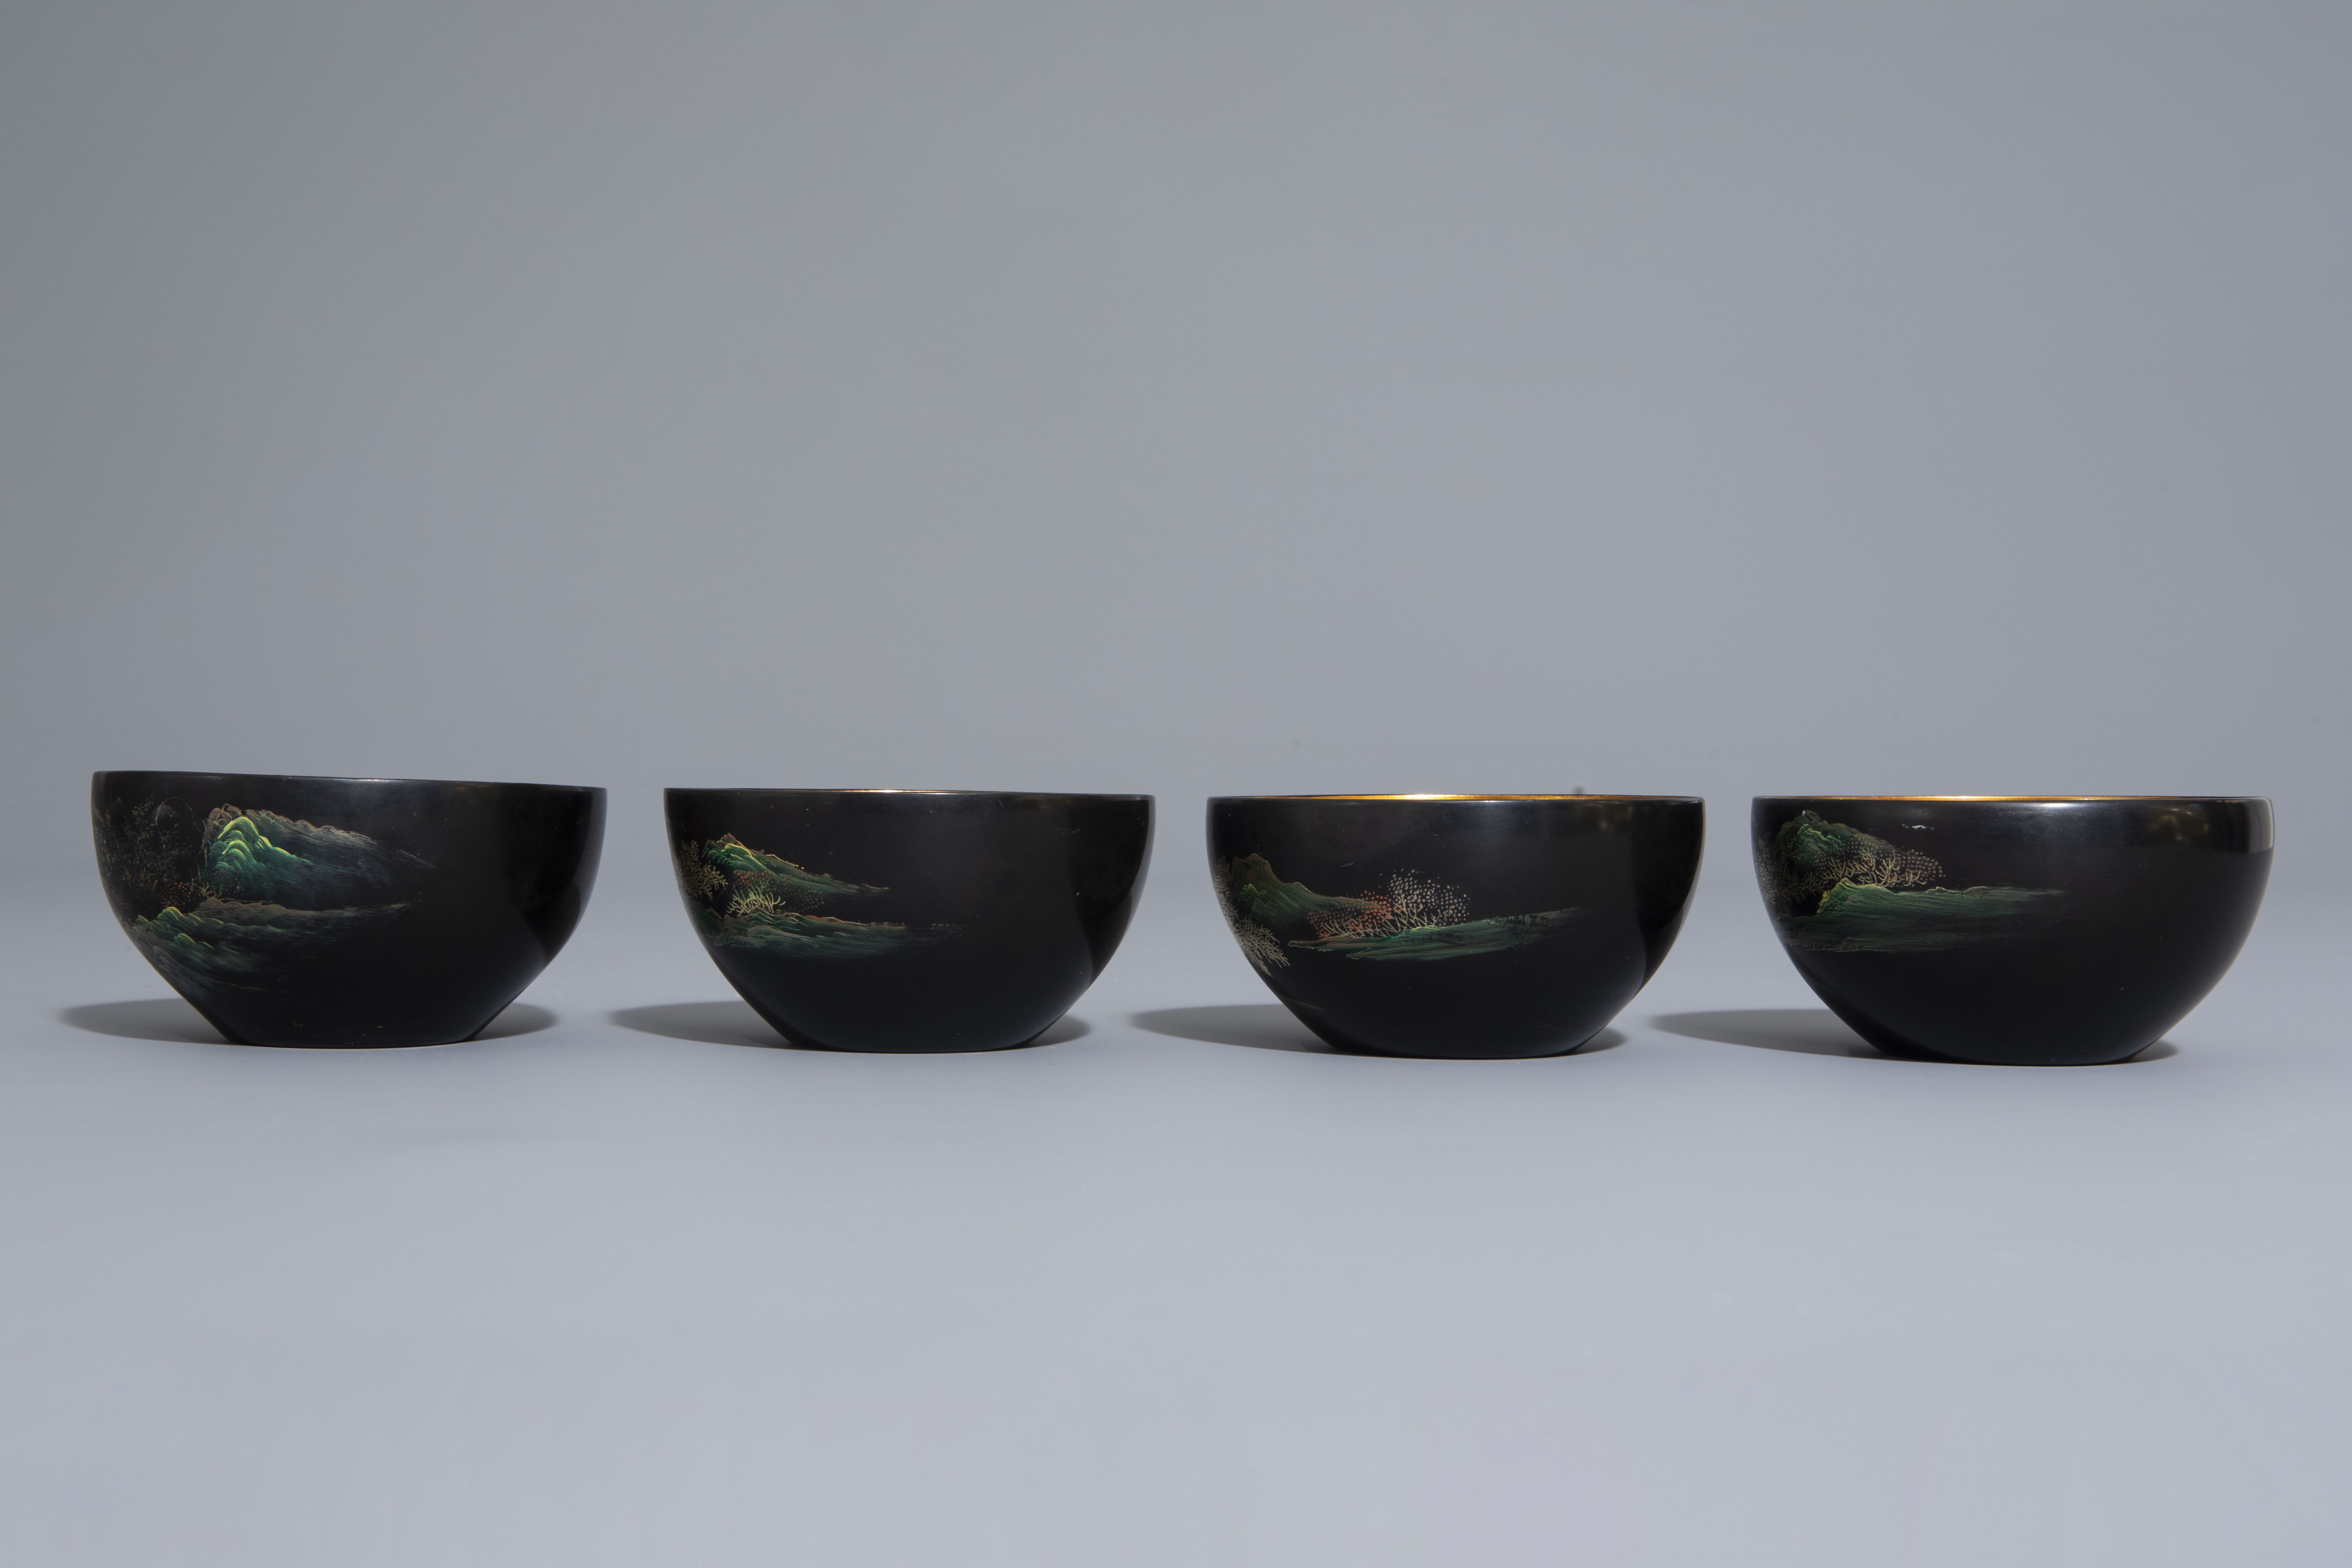 An extensive Chinese Foochow lacquer Shen Shao'an style coffee and tea service, 20th C. - Image 11 of 23